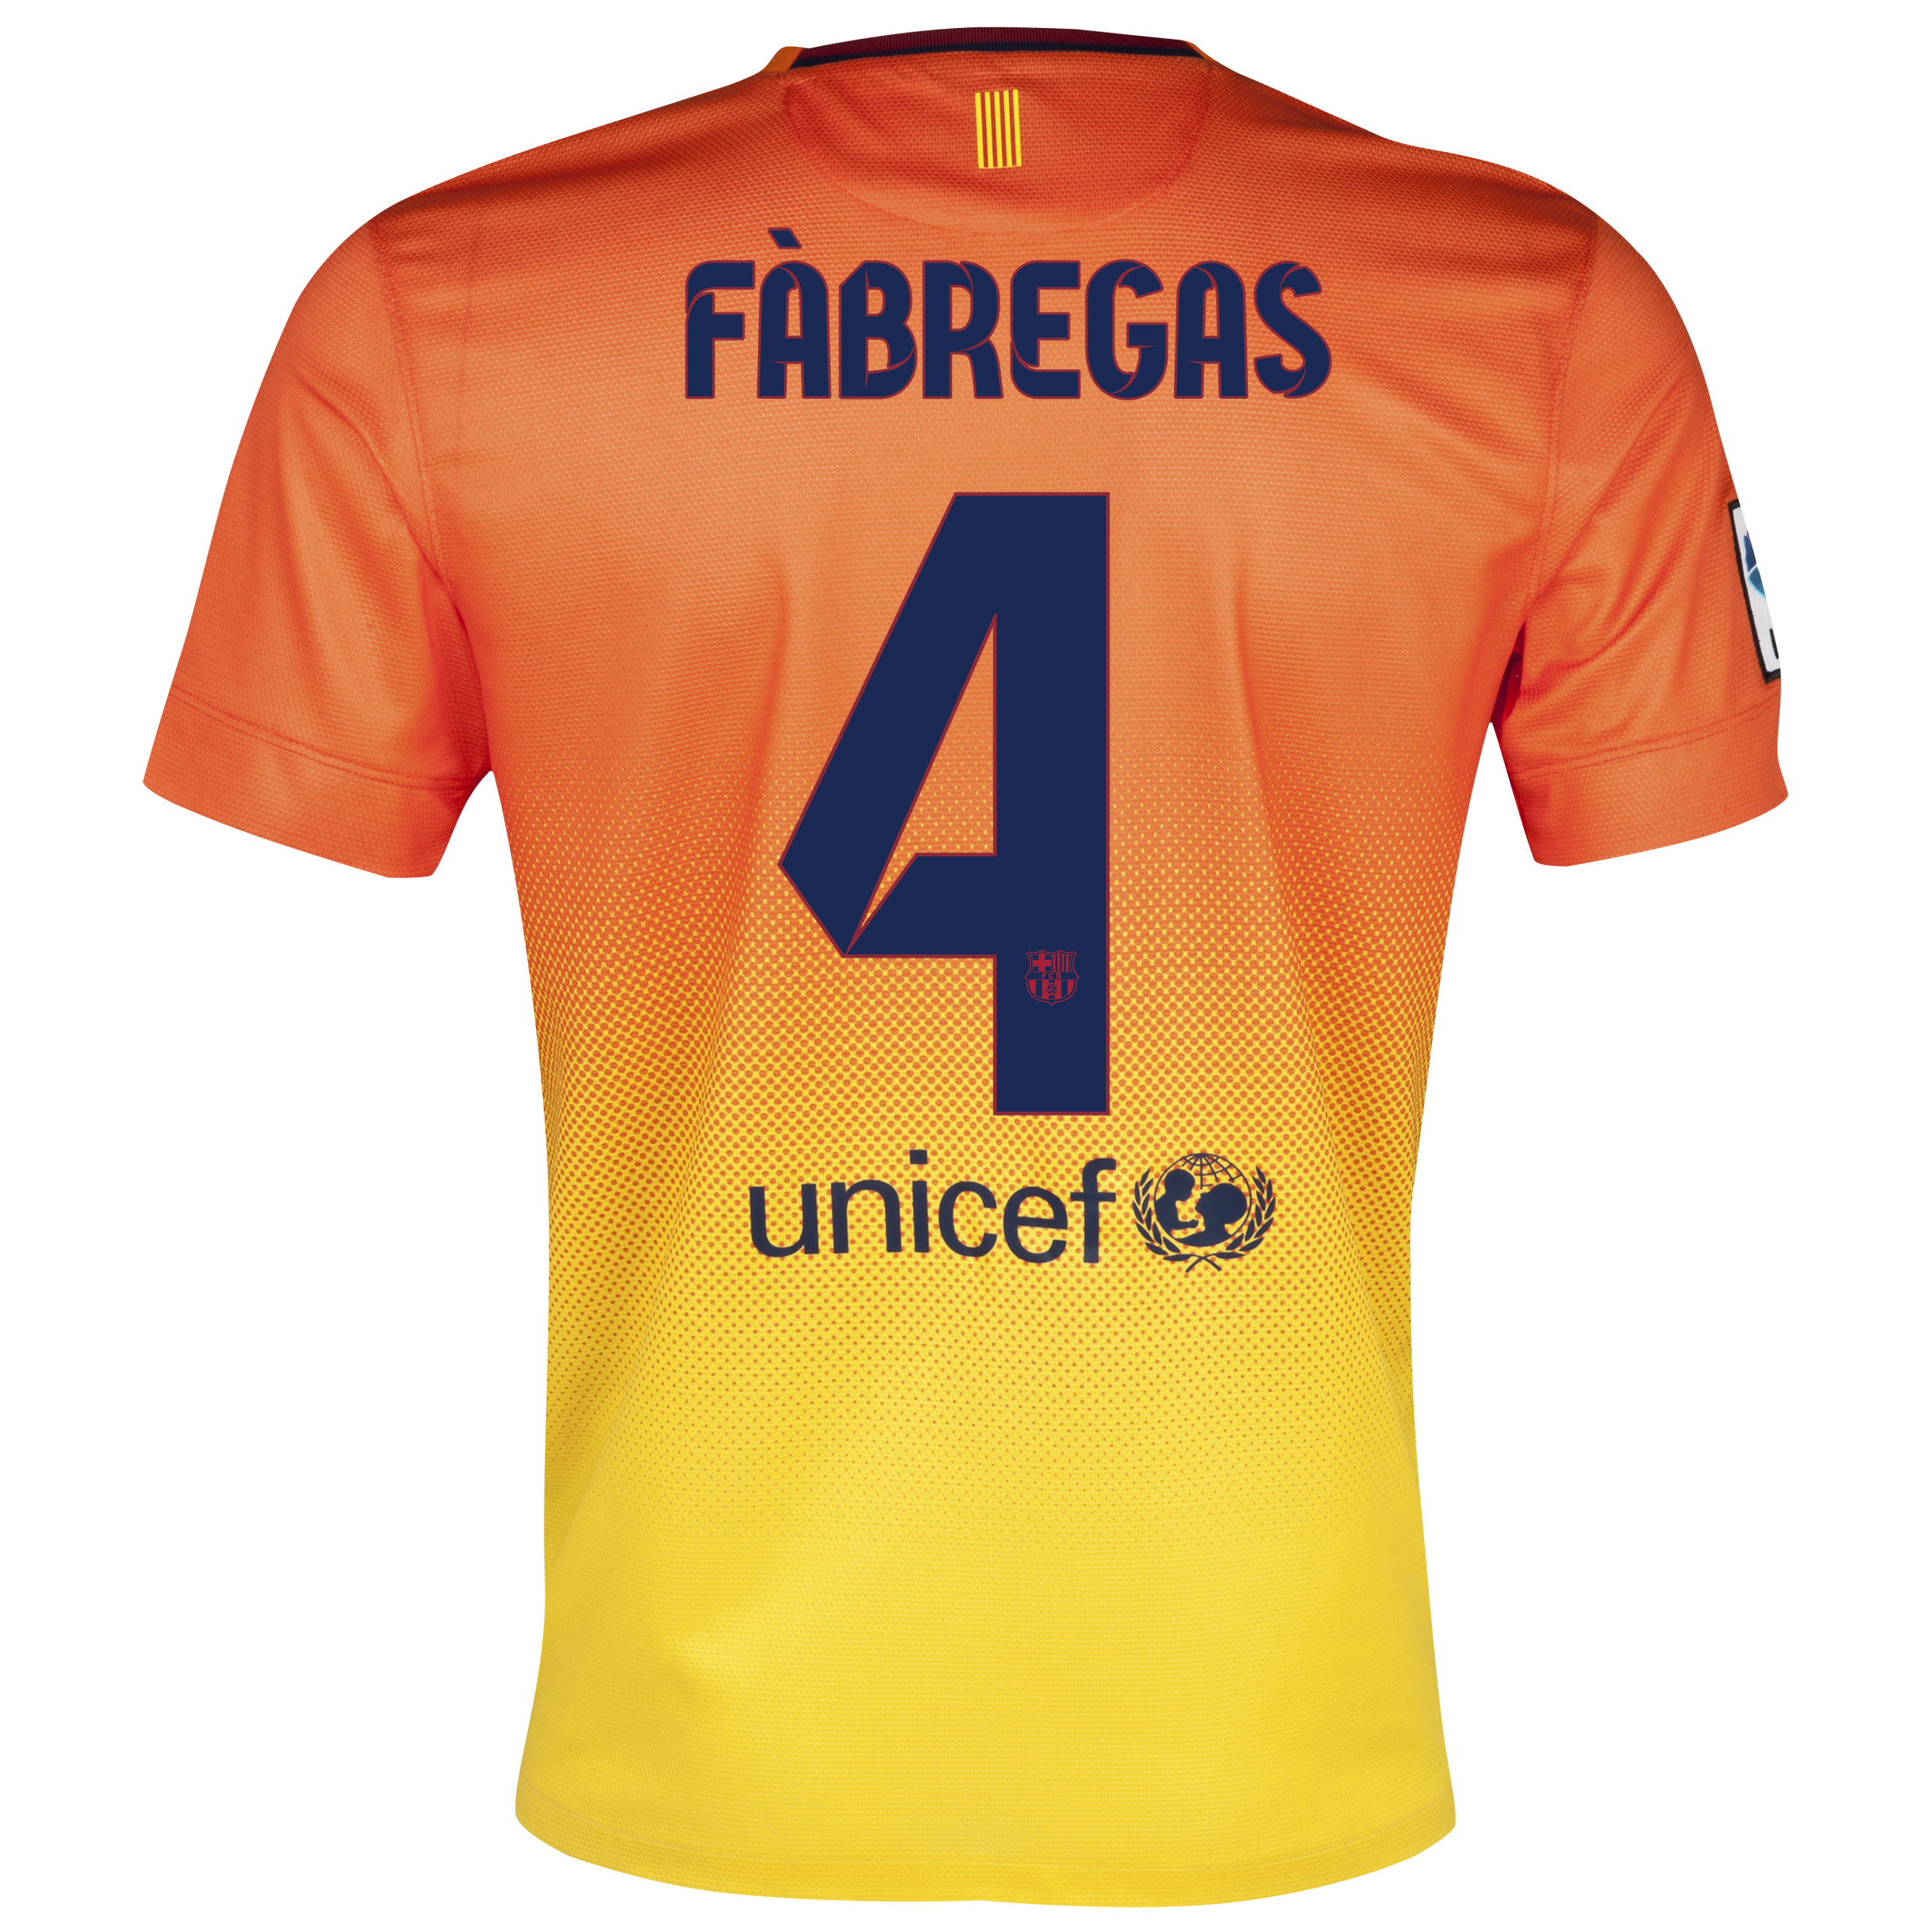 Barcelona Away Shirt 2012/13 with Fabregas 4 printing